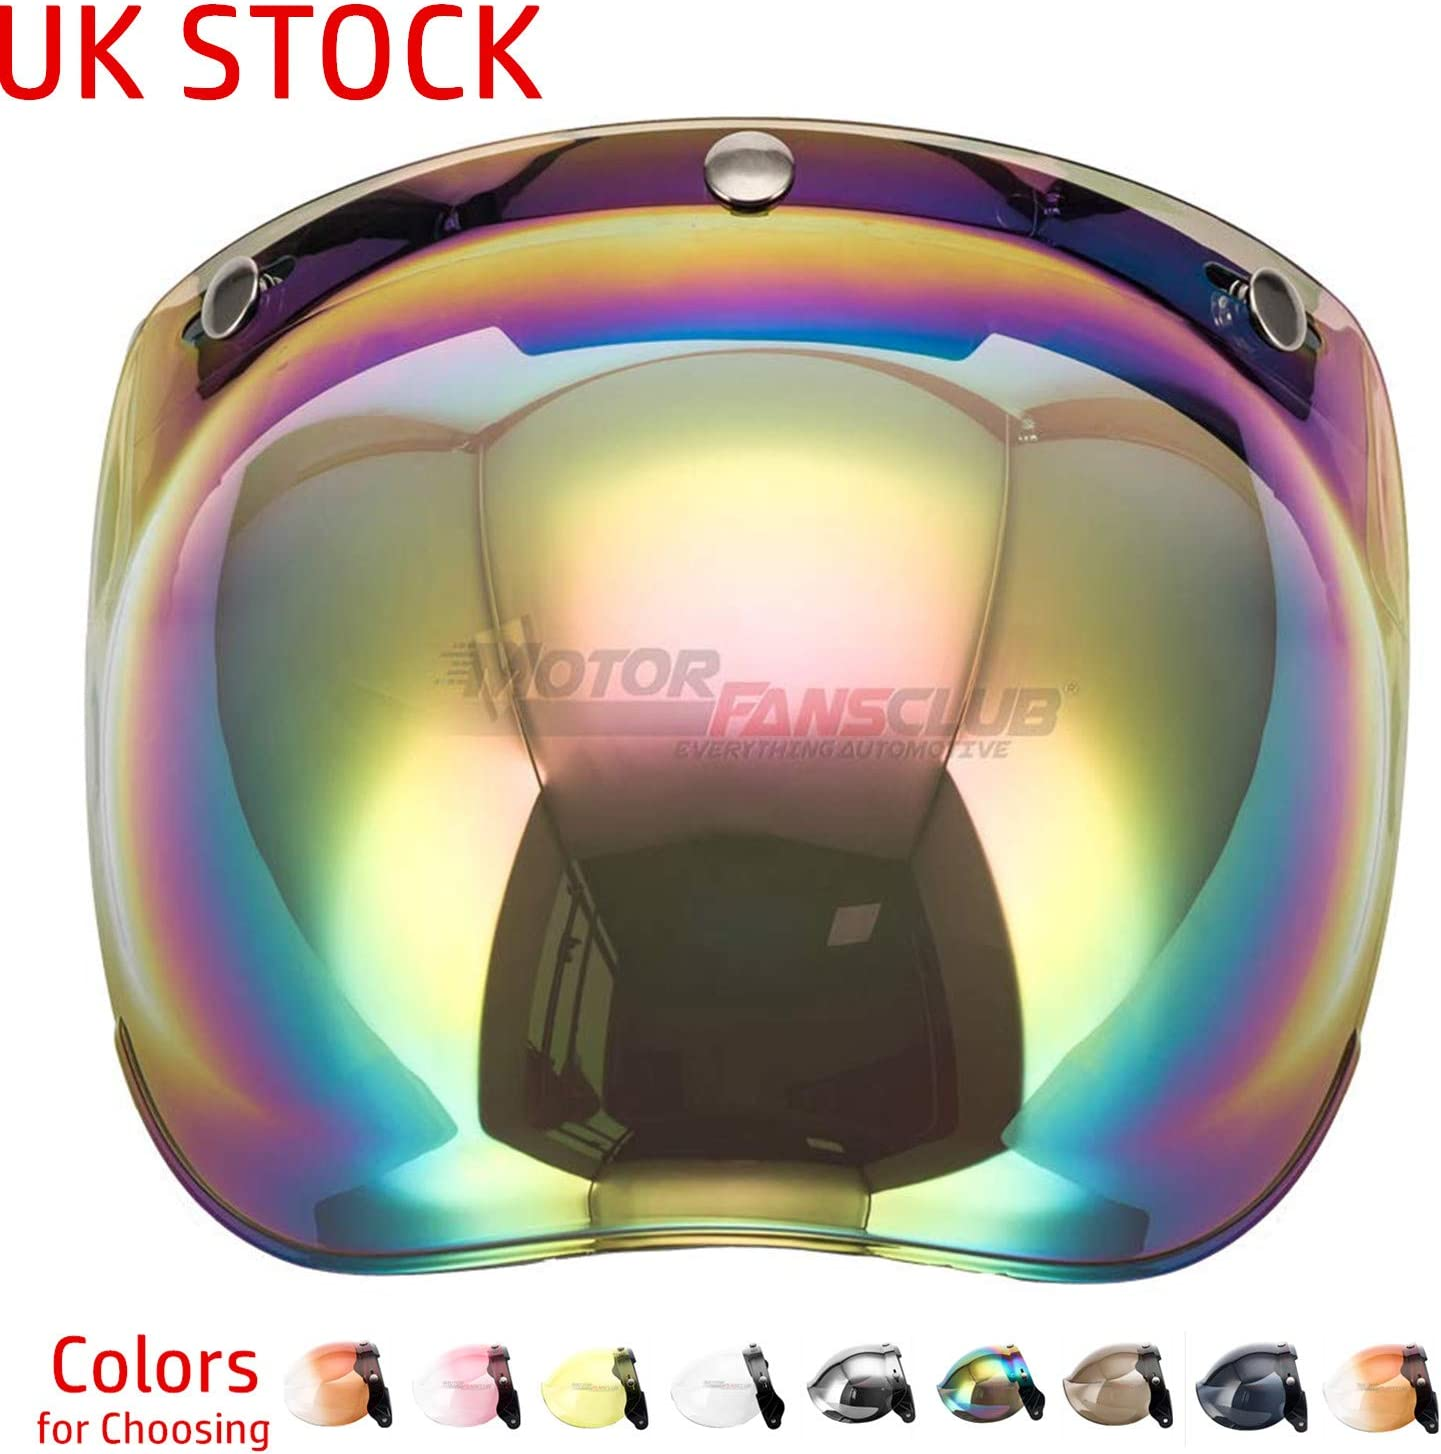 MotorFansClub Universal 3-Snap Bubble Visor Shield for Street Bike Motorcycle Helmet with Removable Flip Adapter Open Face Helmet Accessories Clear, One Size